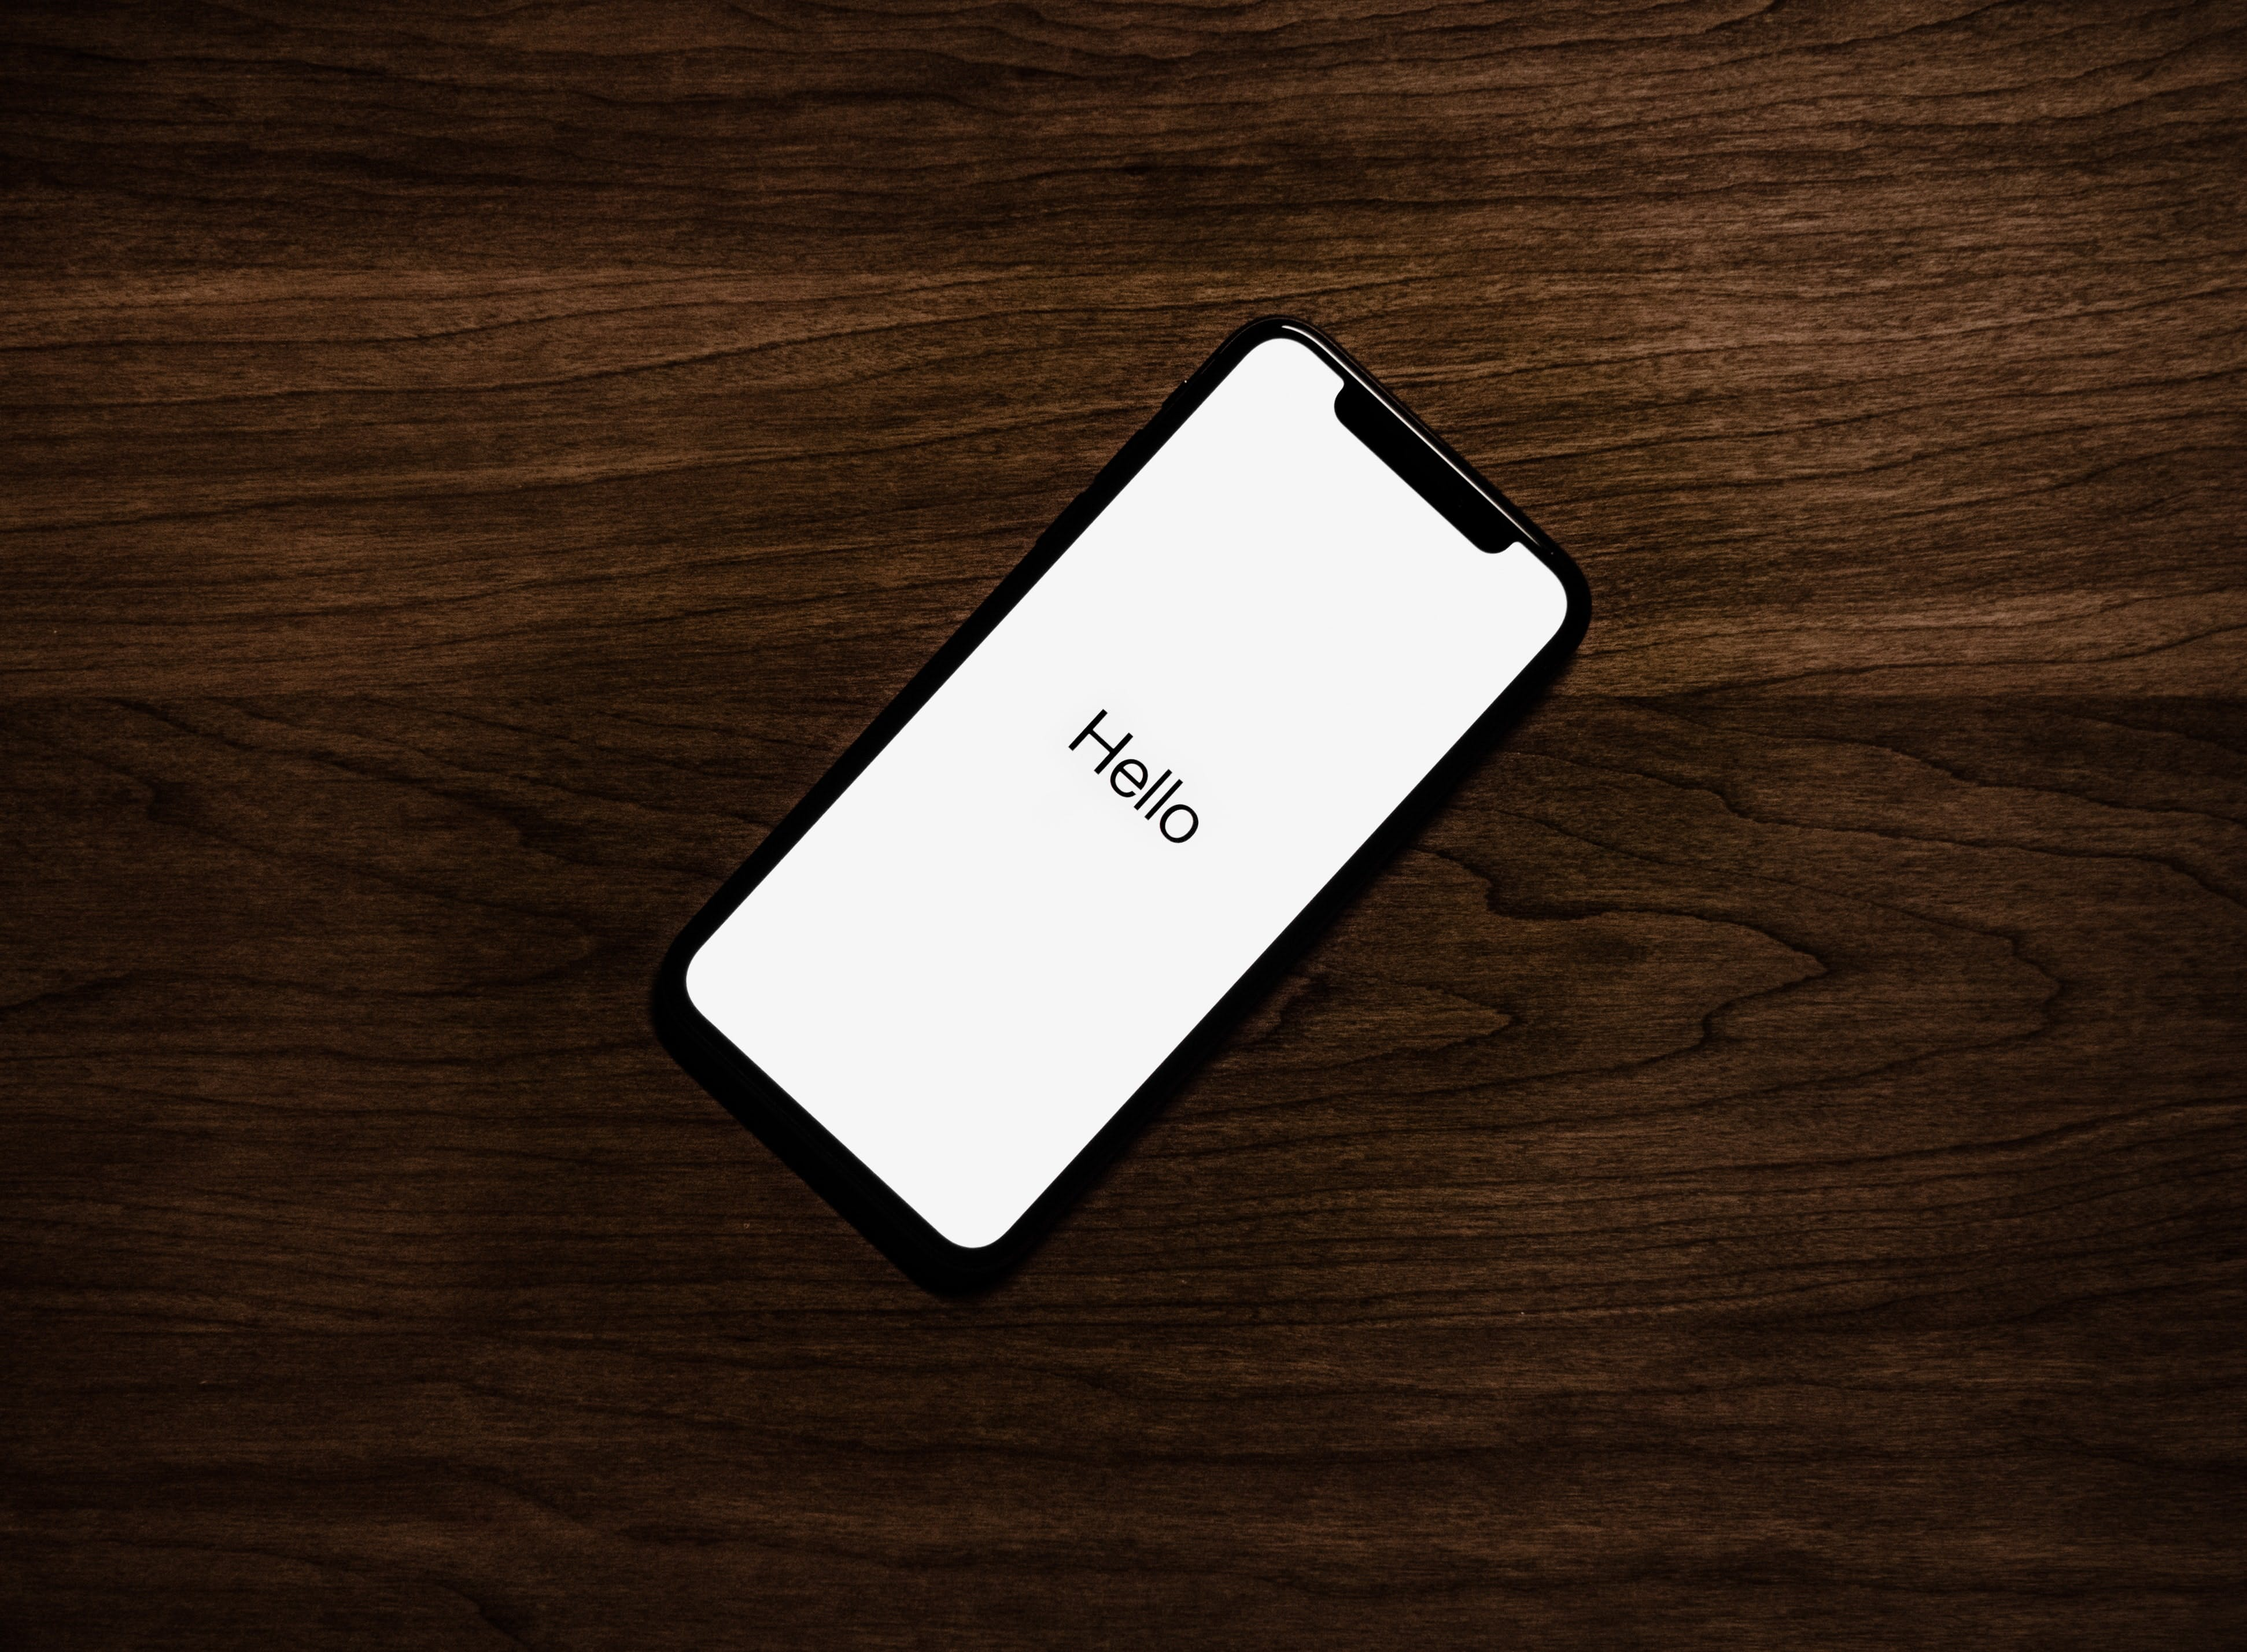 apple iphone on wooden desk with hello on the screen